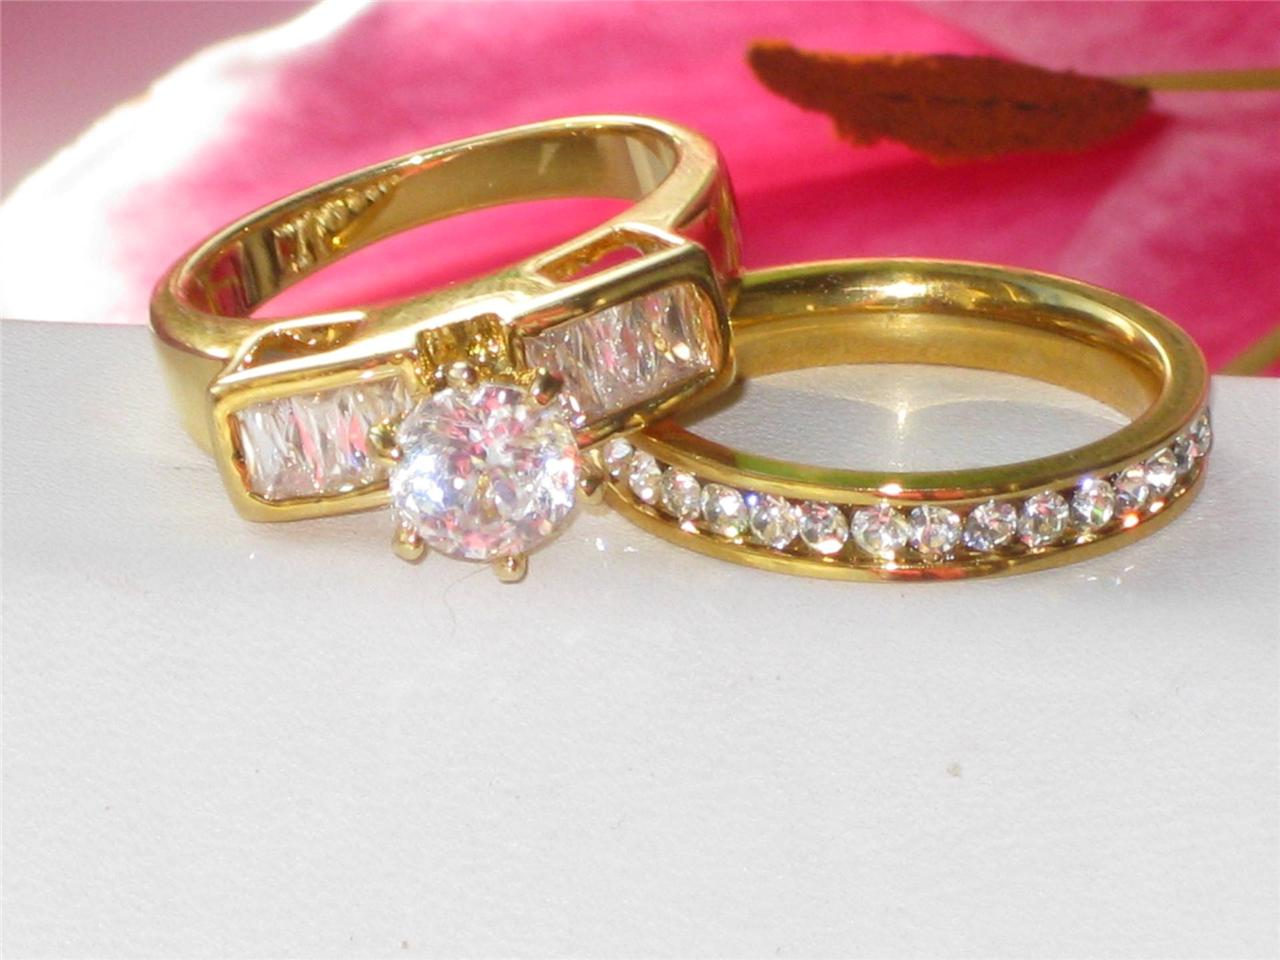 Sale 70 f Womens Baguette Solitaire Engagement Simulated Diamond Ring RG105